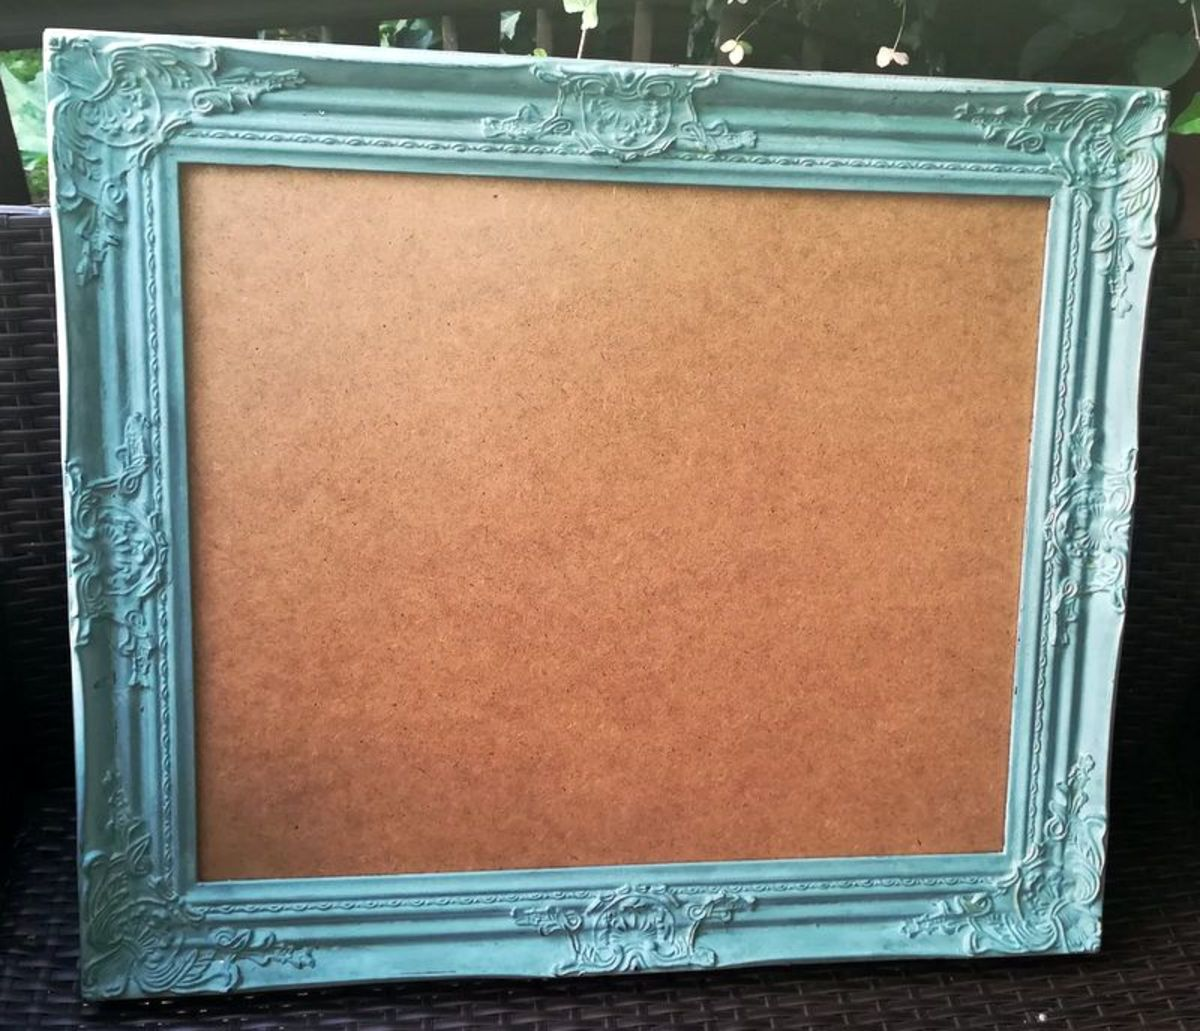 This is the frame I used as the backdrop for my DIY skull decoration.